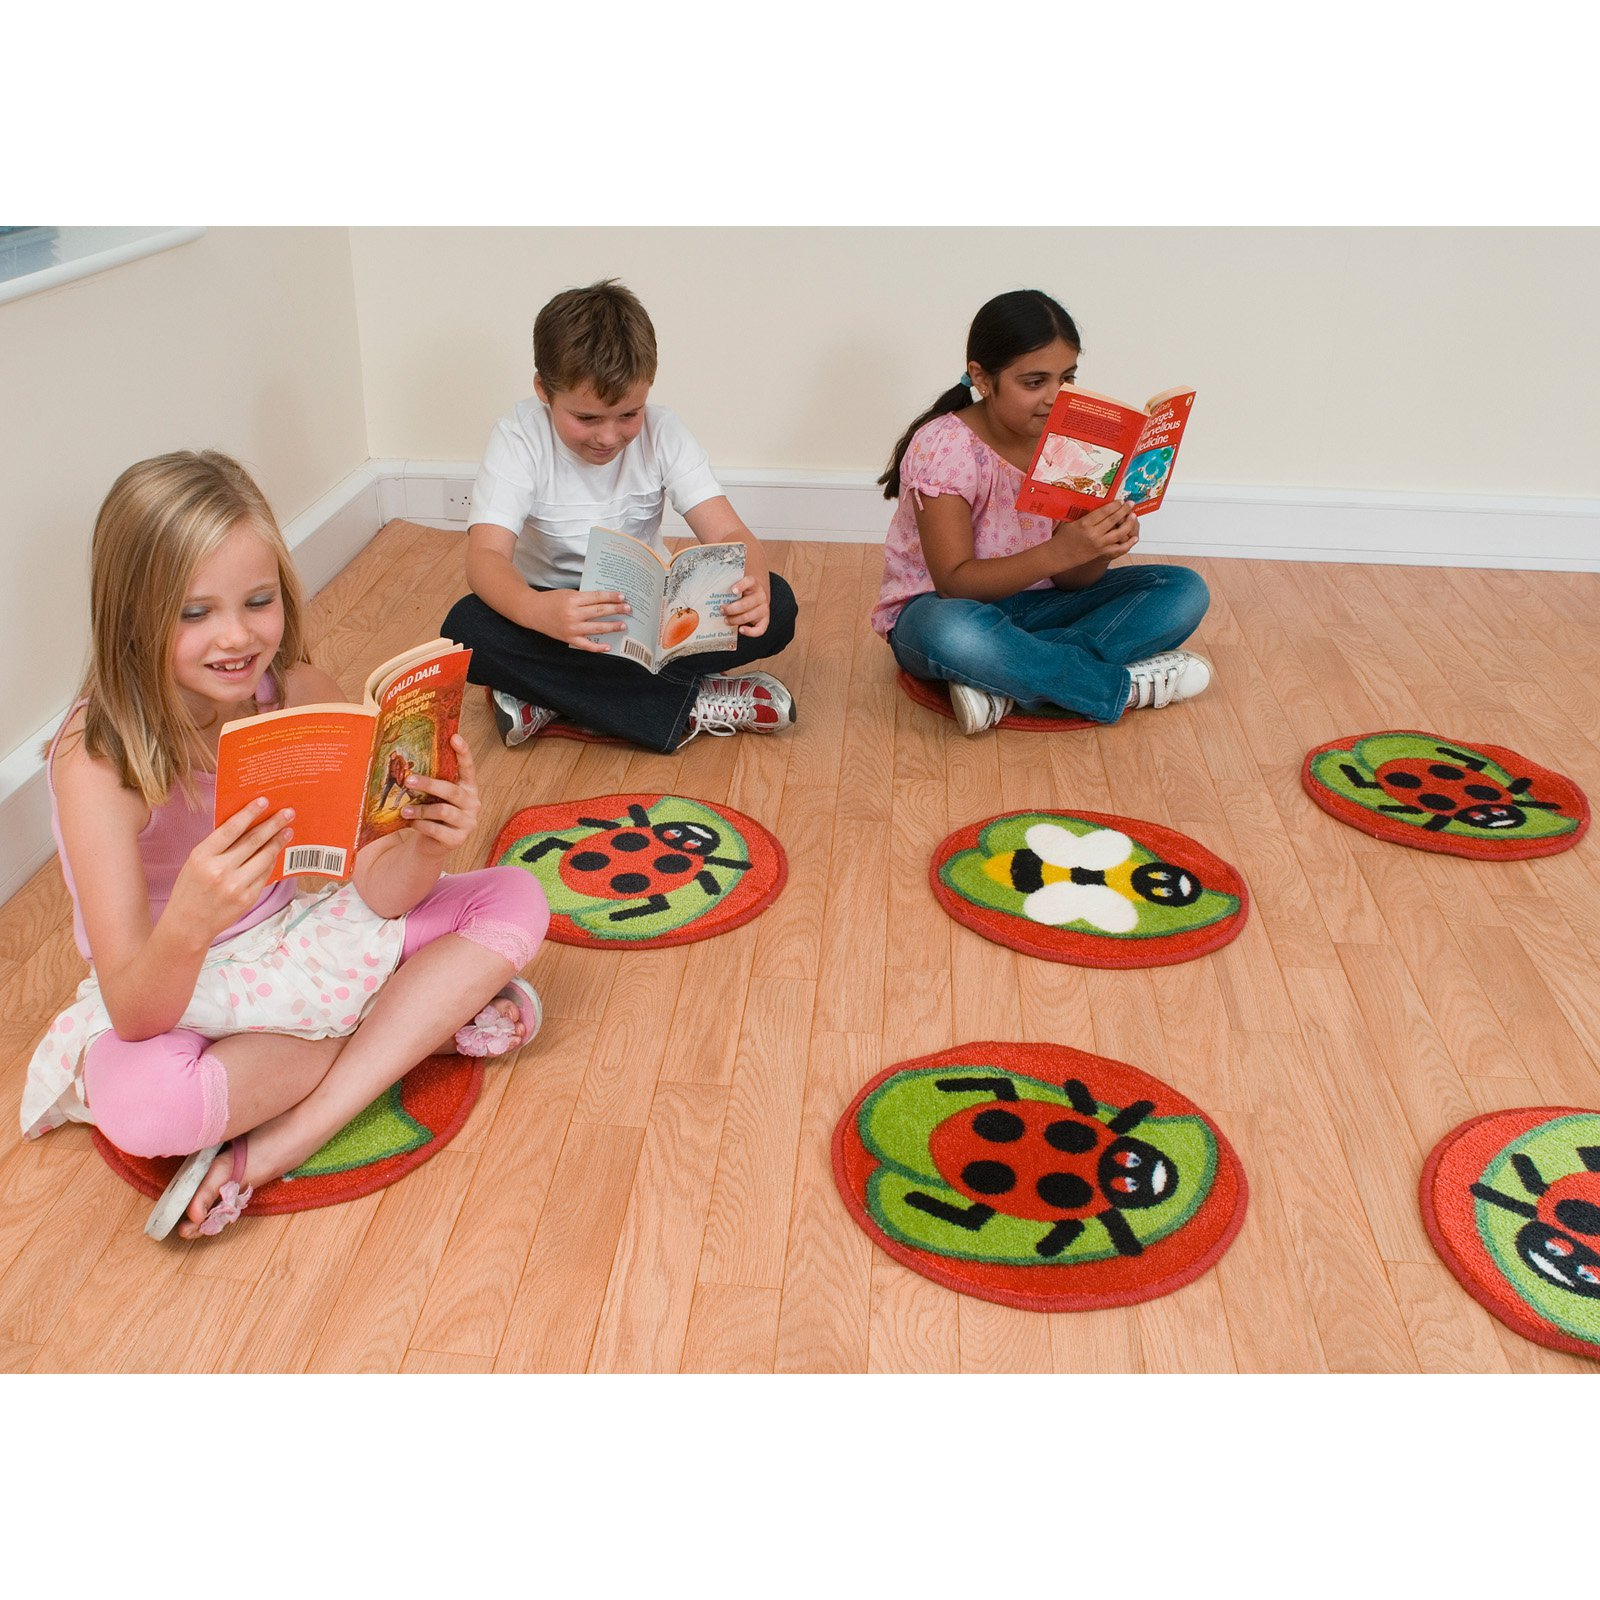 Kalokids Back to Nature Bug Mini Placement Carpets with Carryall